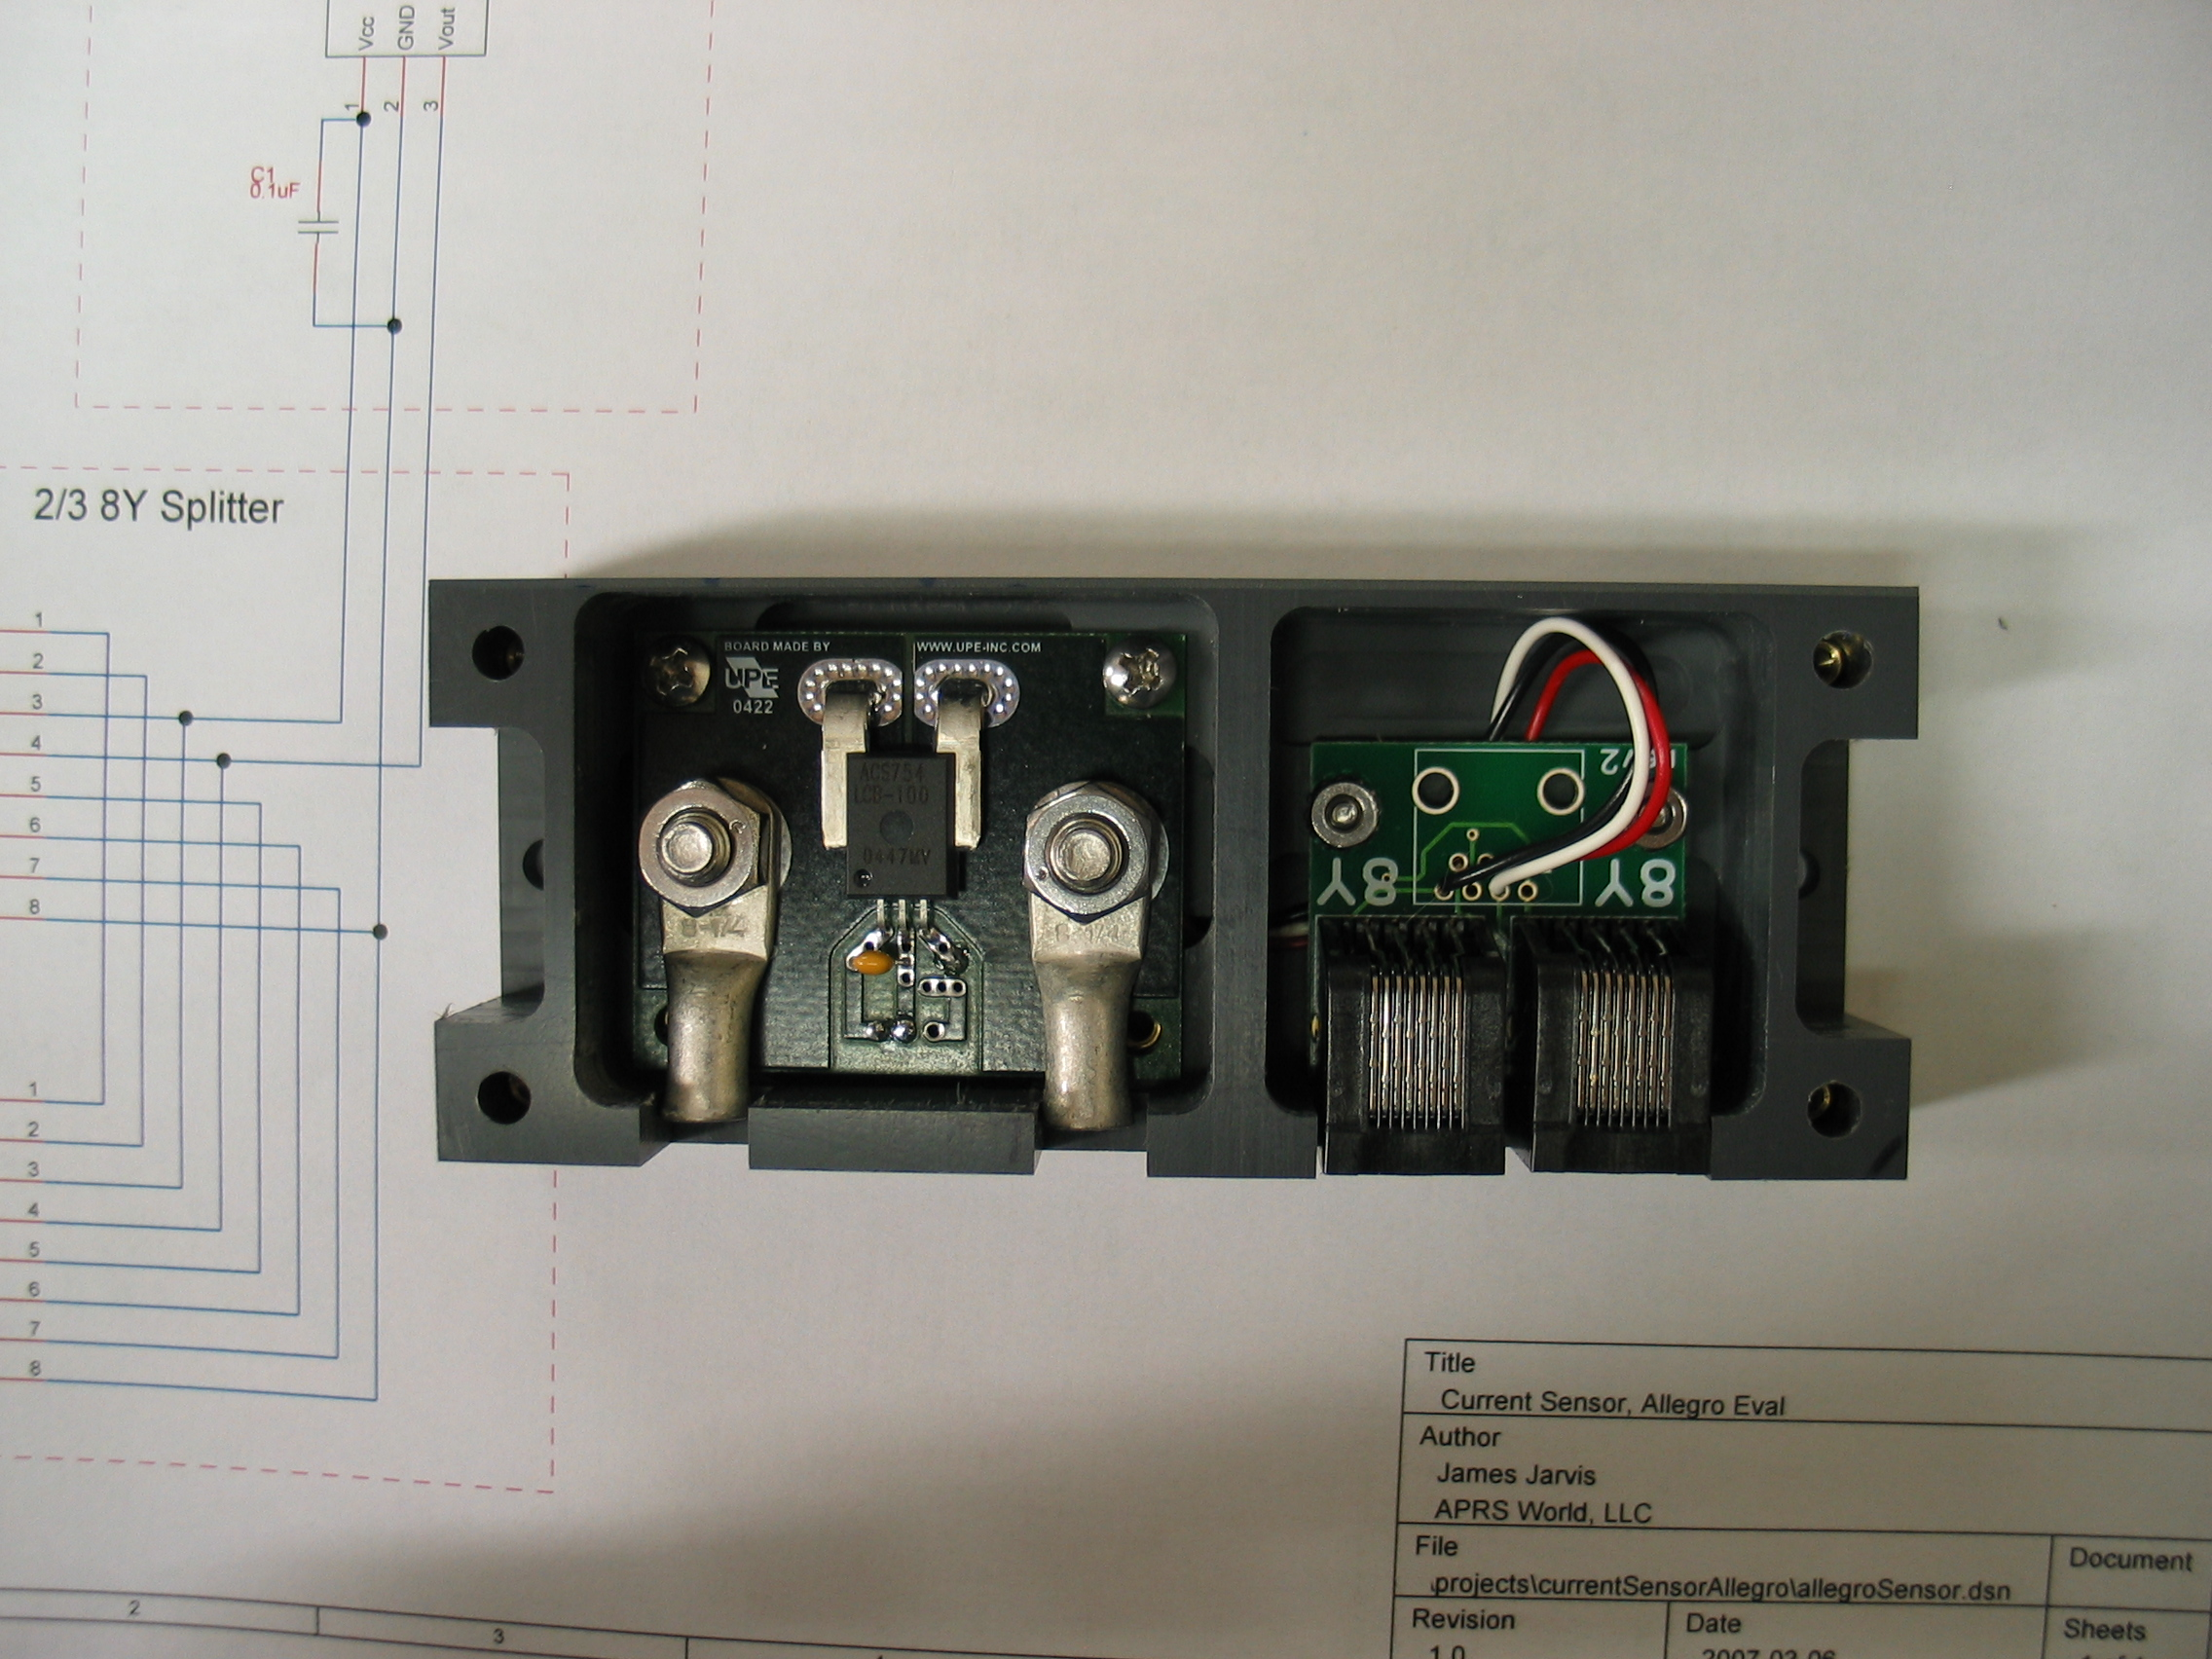 100 Amp Current Sensor That Is Compatible With The Wind Data Logger Hall Effect Wiring View Full Size Slideshow